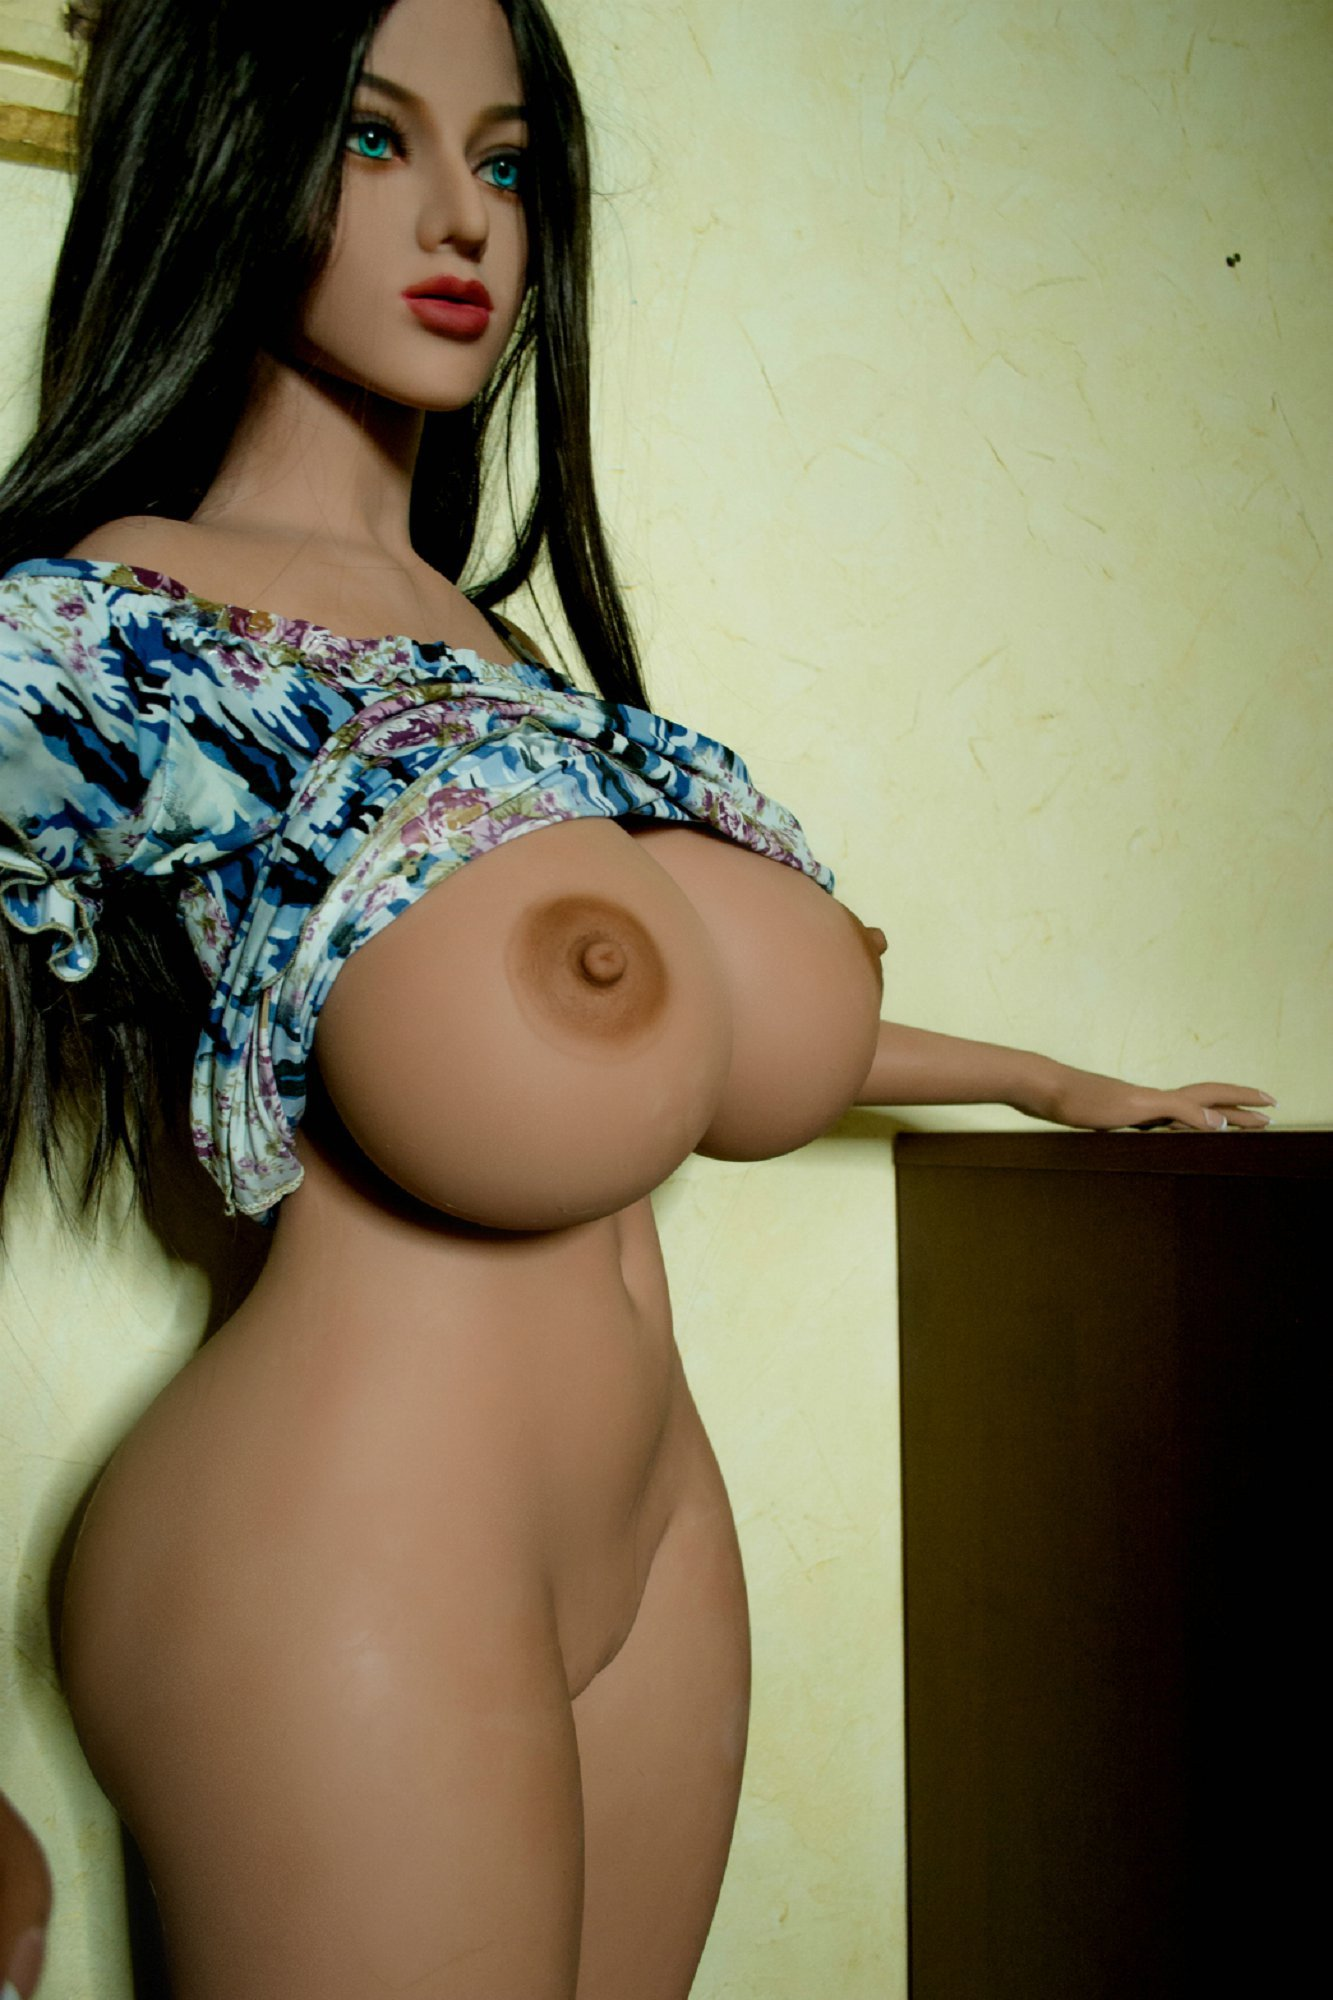 BIG TITS SEX DOLL KASANDRA